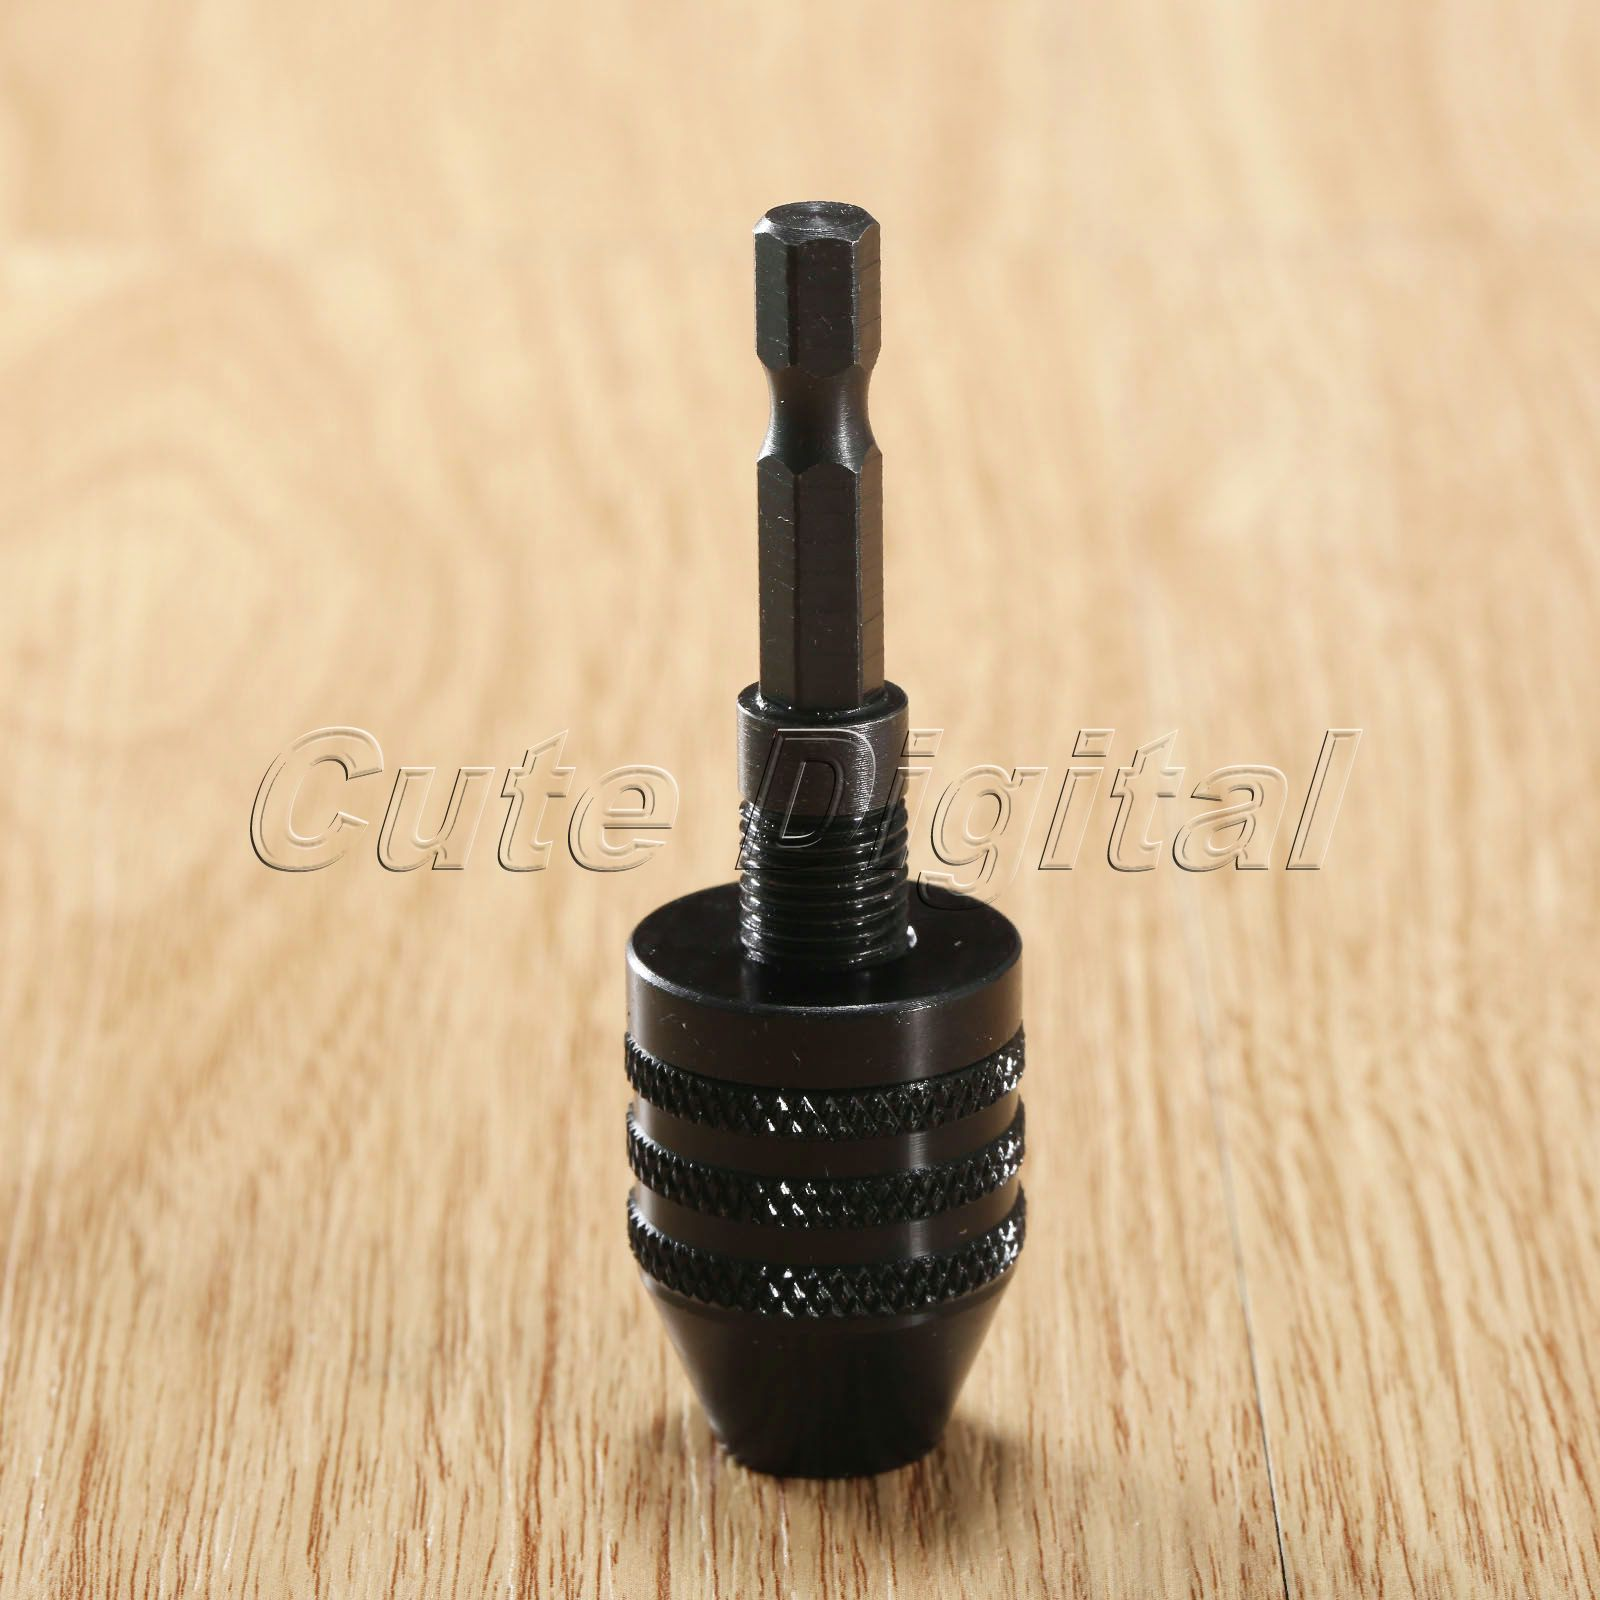 0.3-6.5mm Keyless Drill Bit Chuck Screwdriver Machine Conversion Drill Chuck Quick Change Chuck Adapter Converter 1/4 Hex